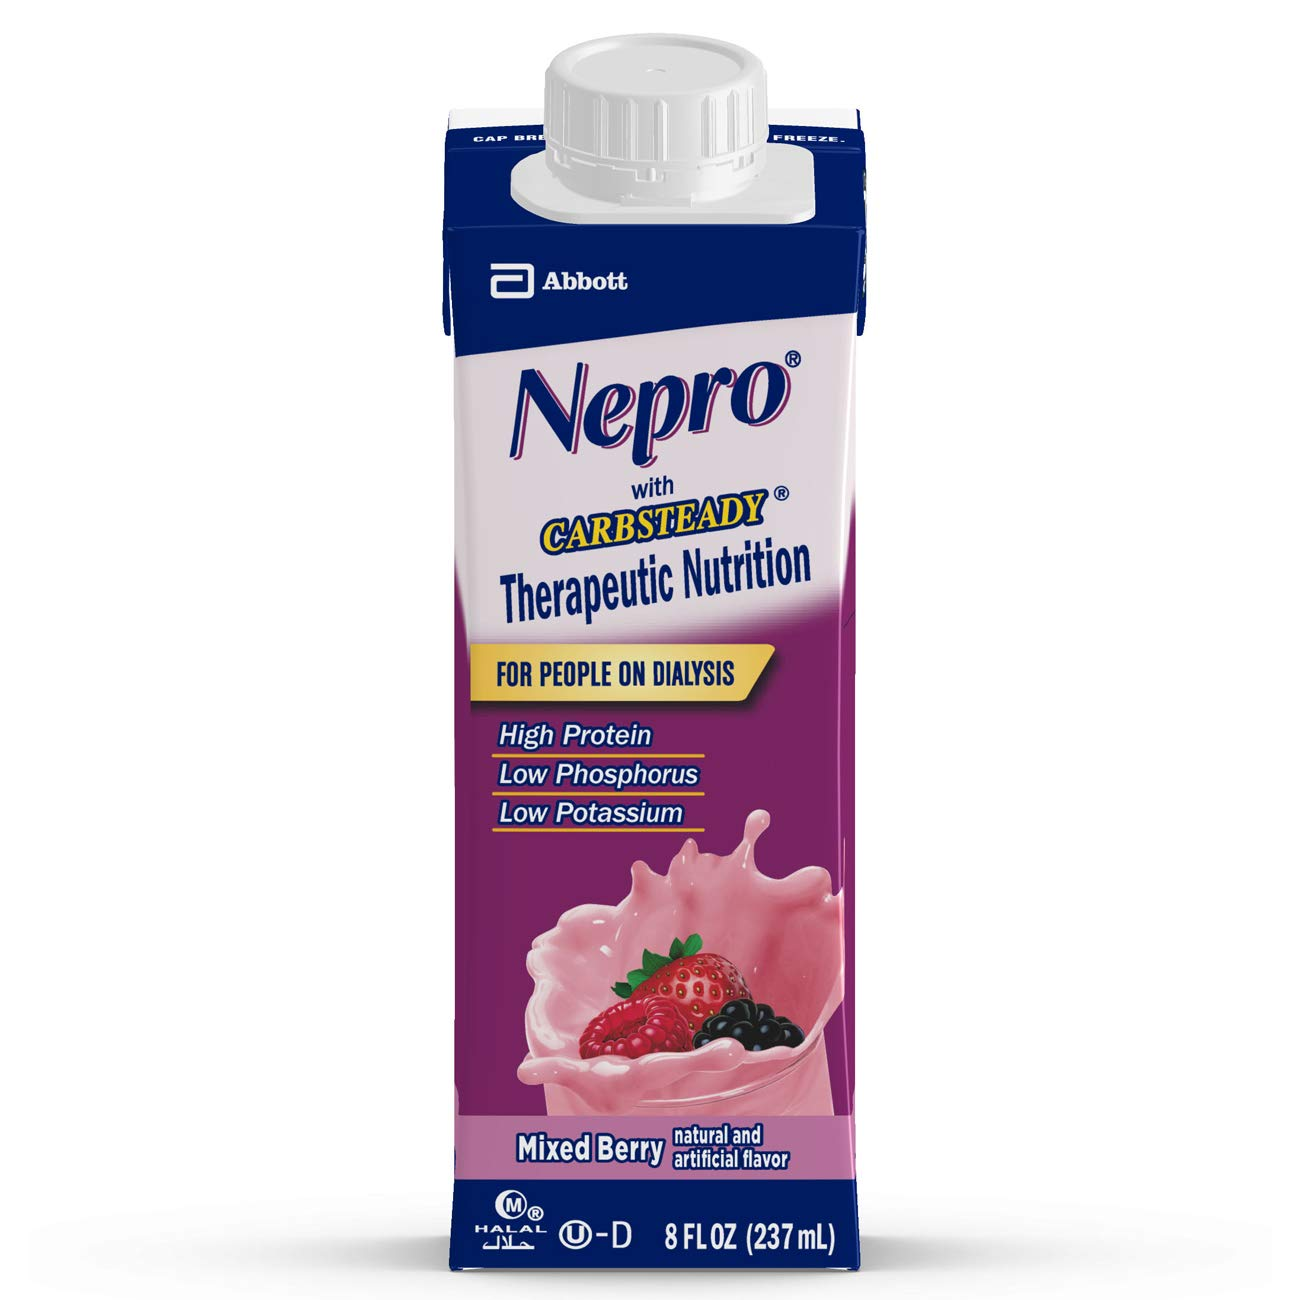 Nepro Therapeutic Nutrition Shake with 19 grams of protein, Nutrition for people on Dialysis, Mixed Berry, 8 fl ounces, (Pack of 24) by Nepro (Image #1)